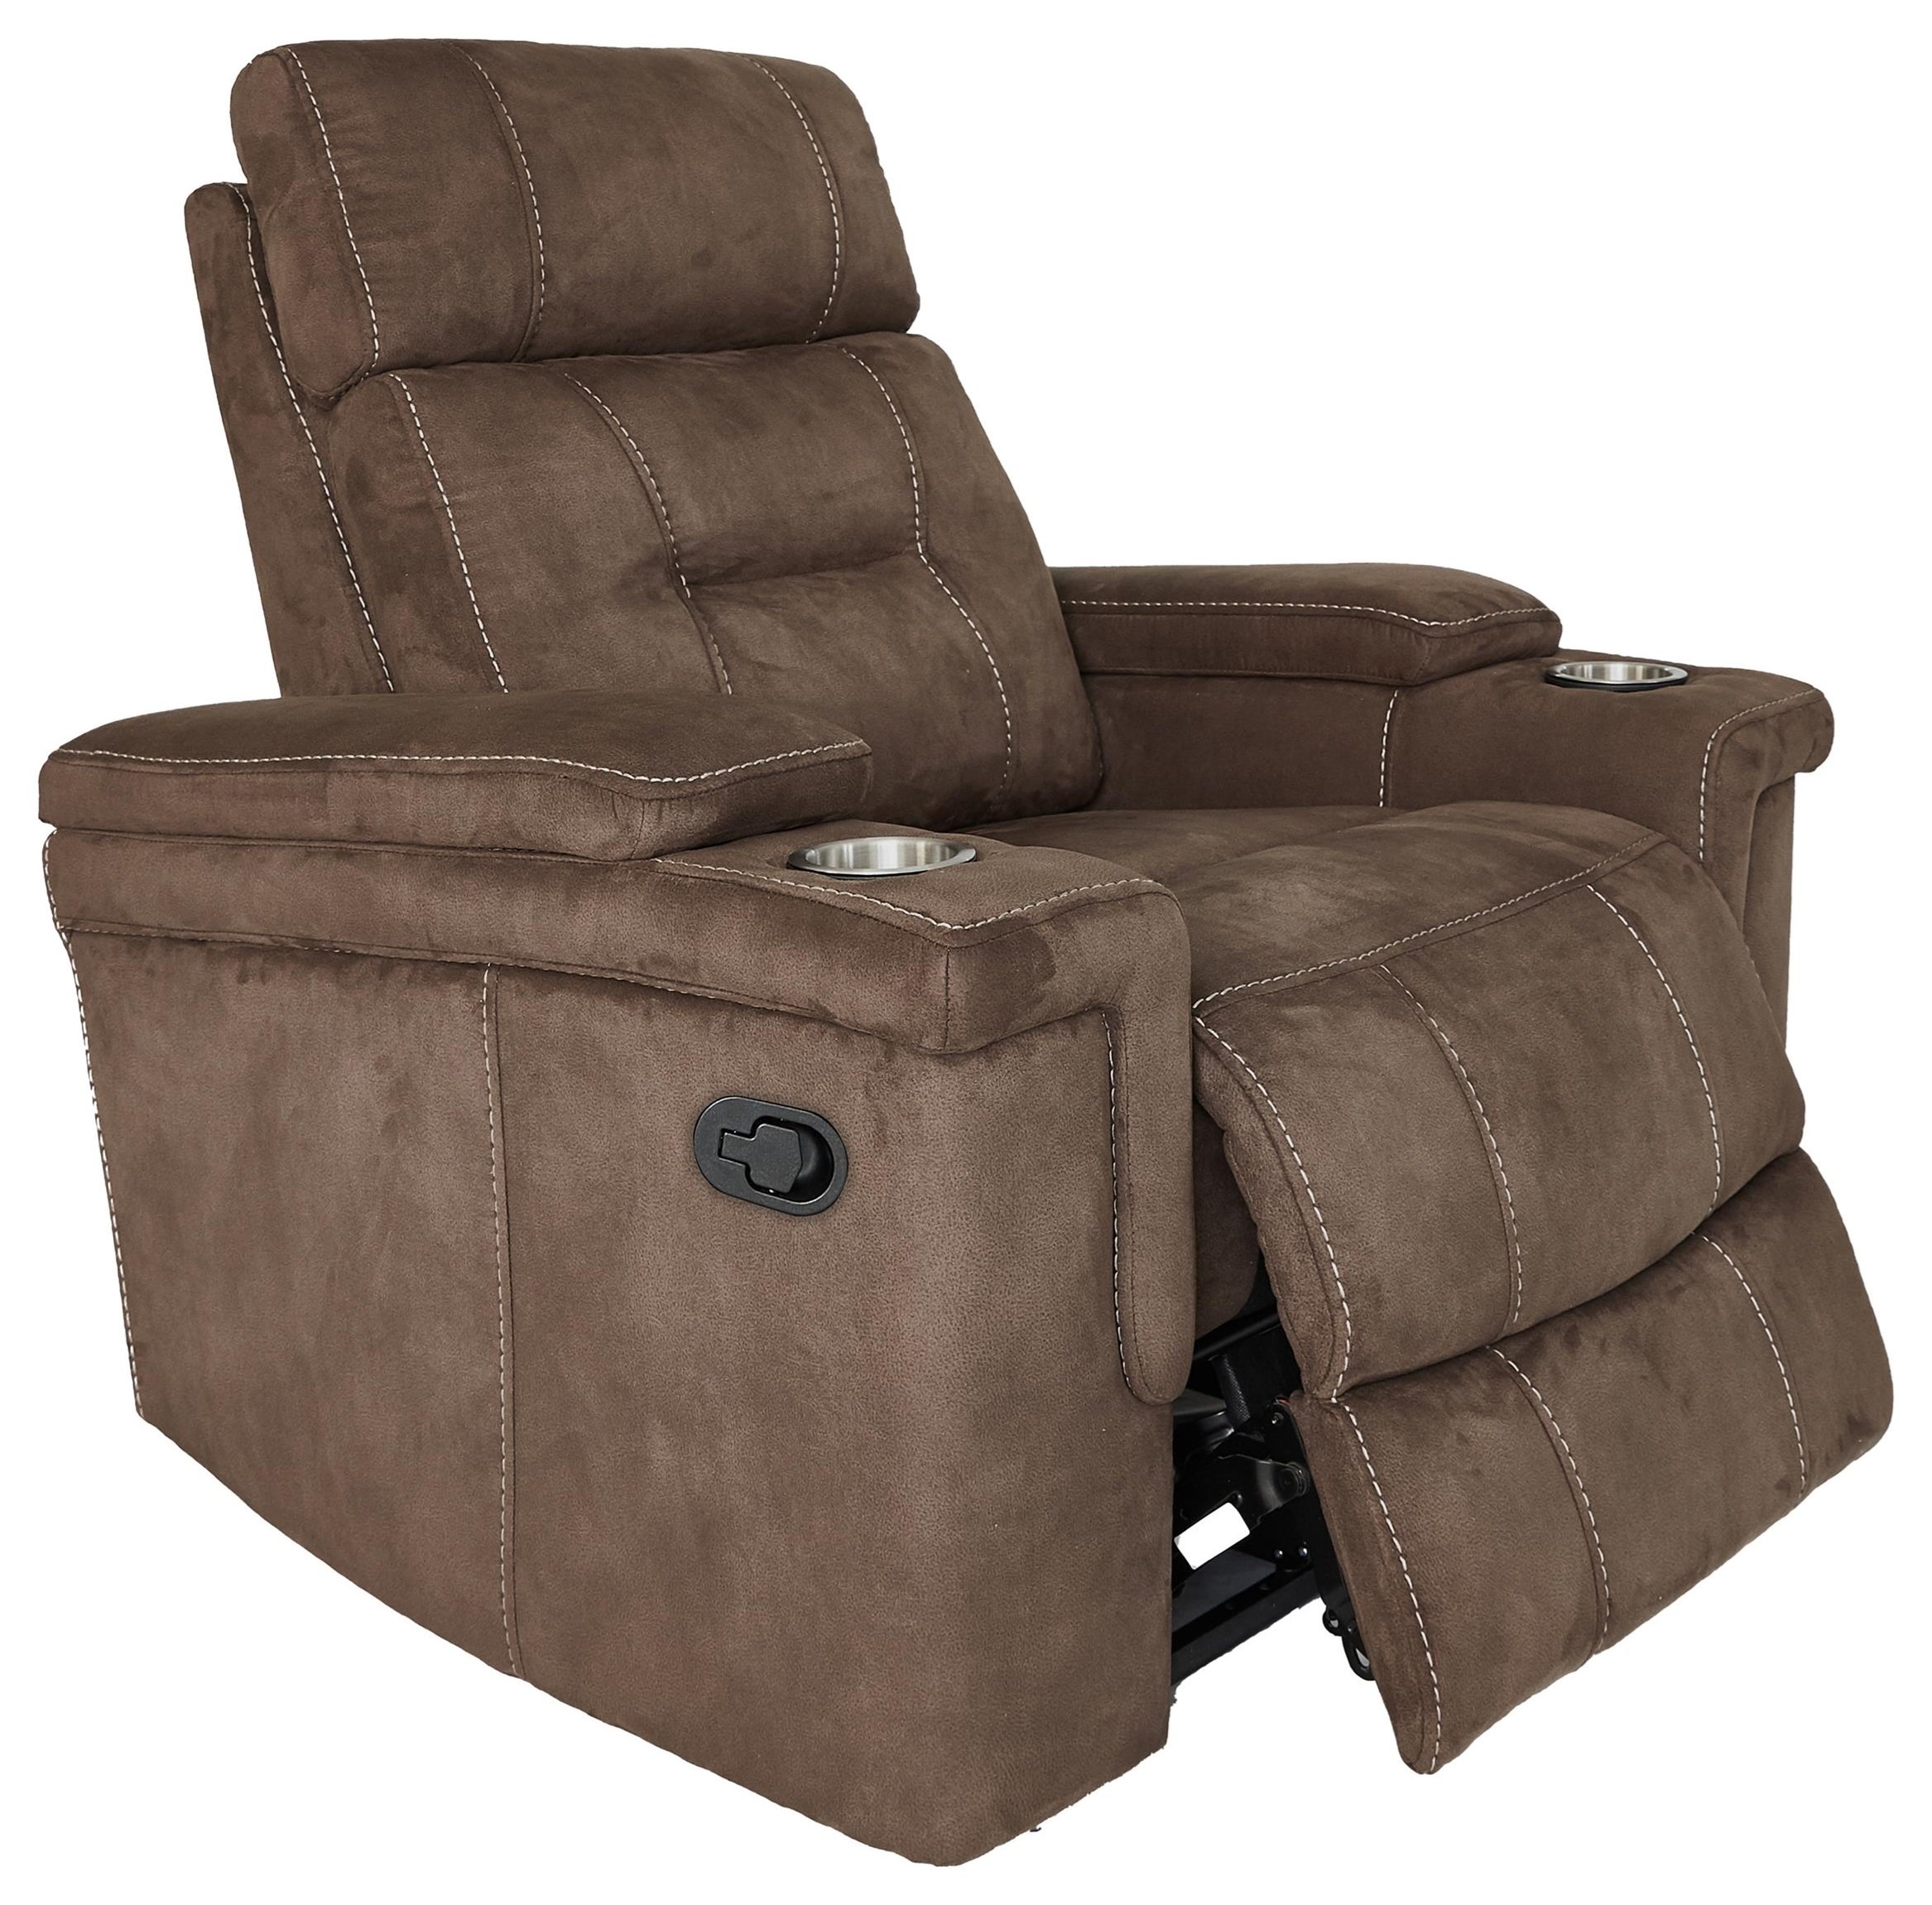 Diesel GLIDER RECLINER by Parker House at Johnny Janosik